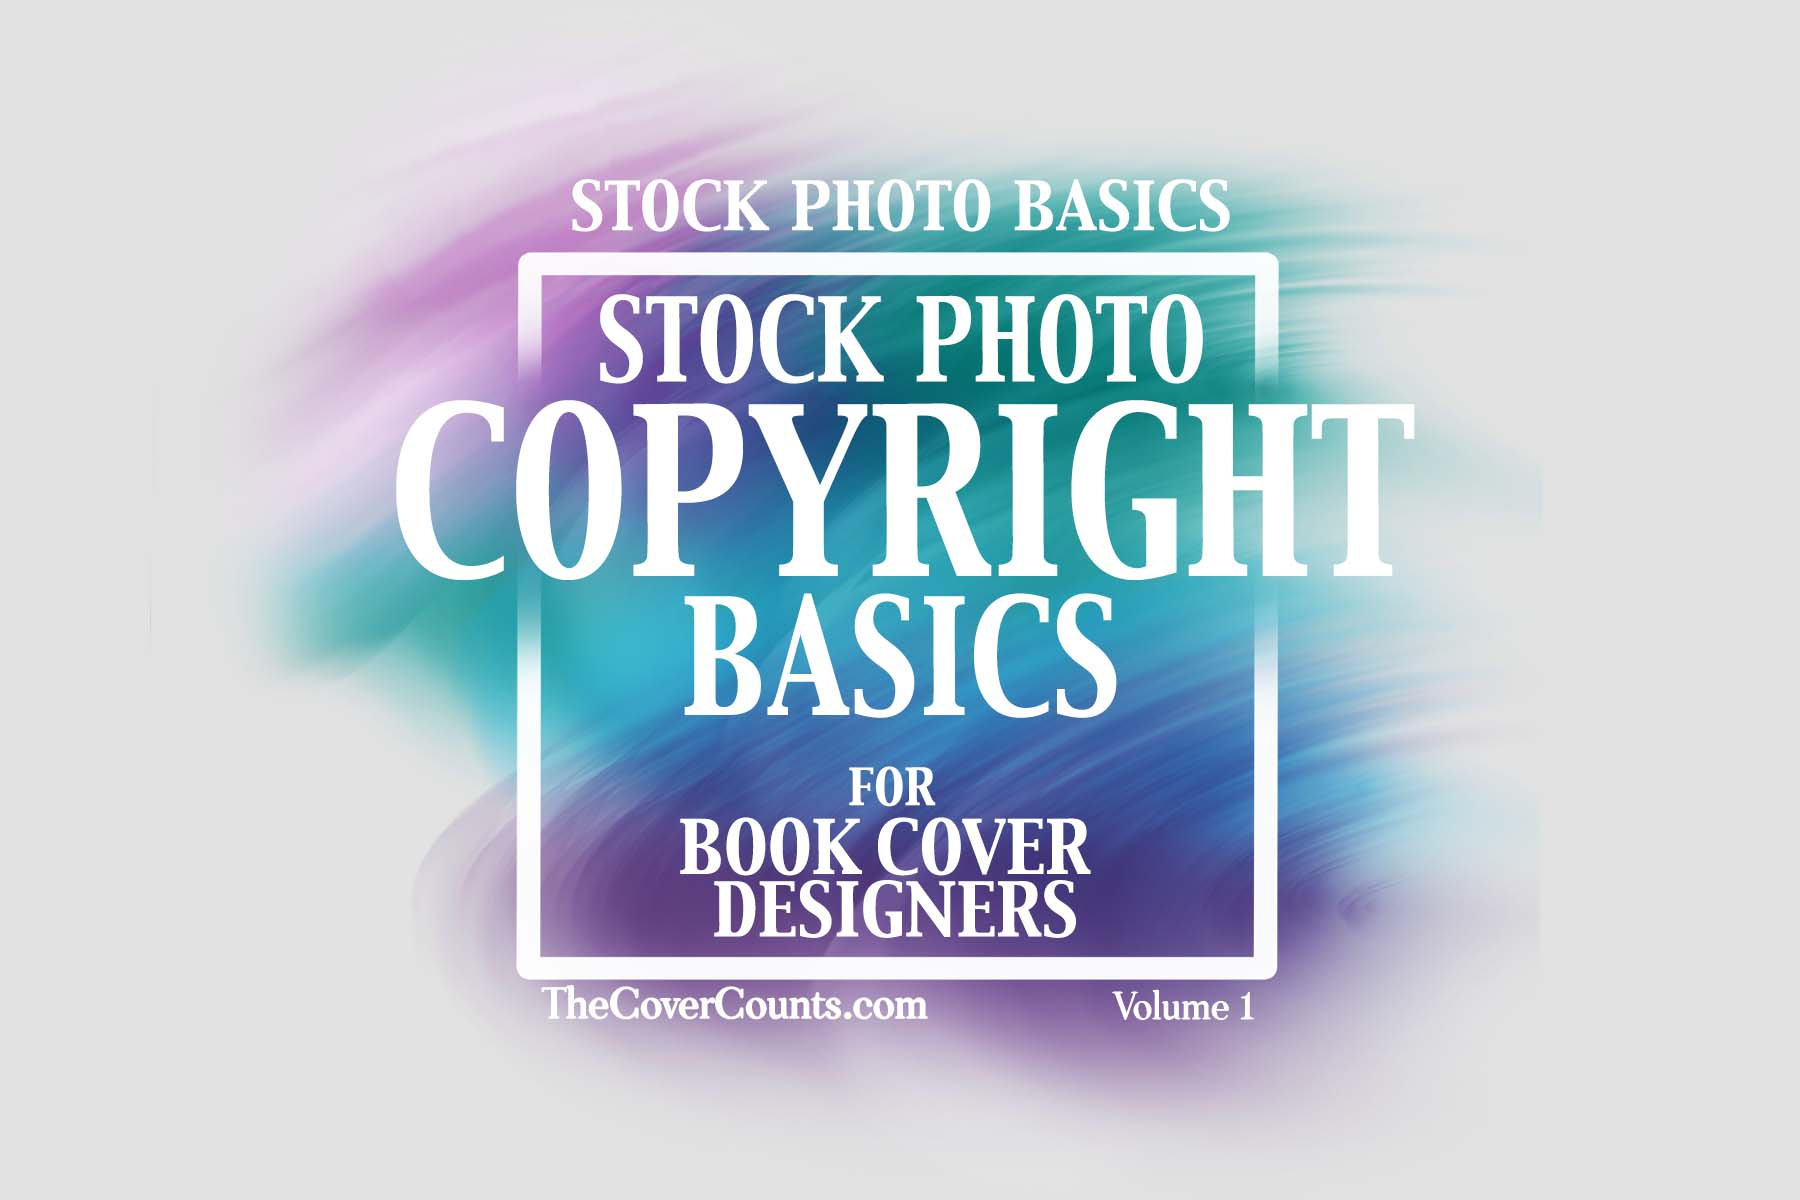 Stock Photo Basics for Book Cover Designers